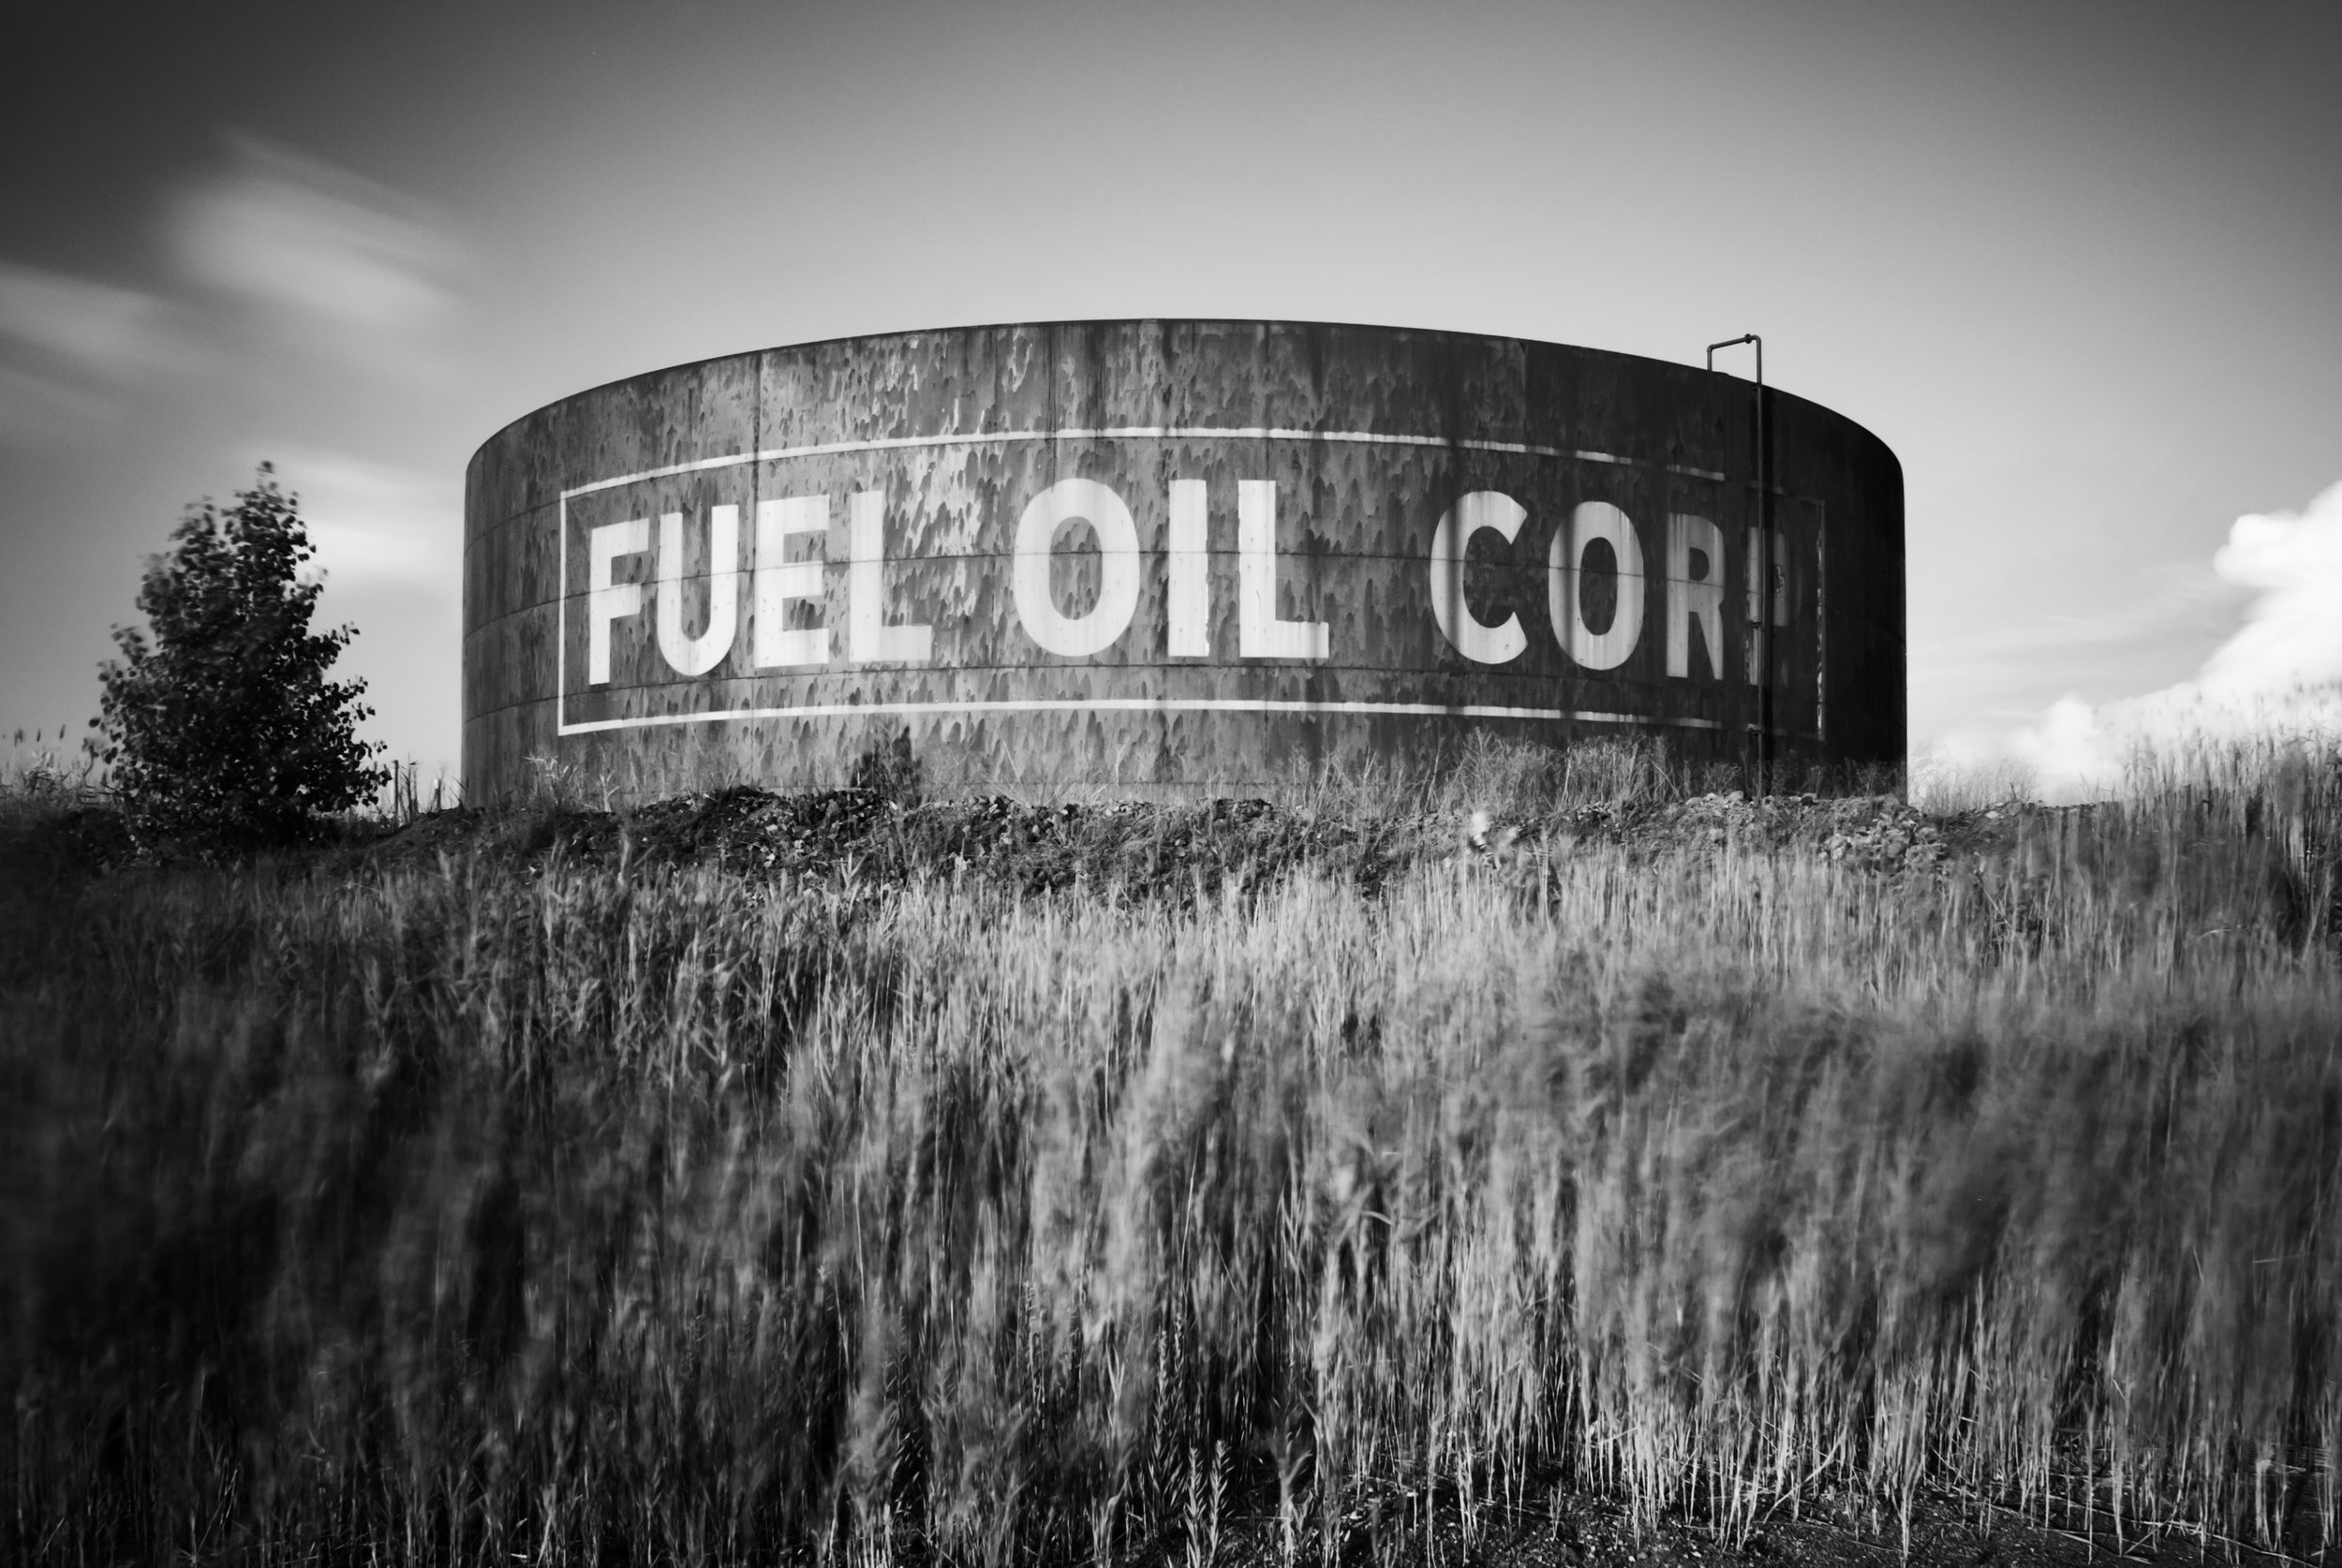 Fuel Oil Corp, 2010